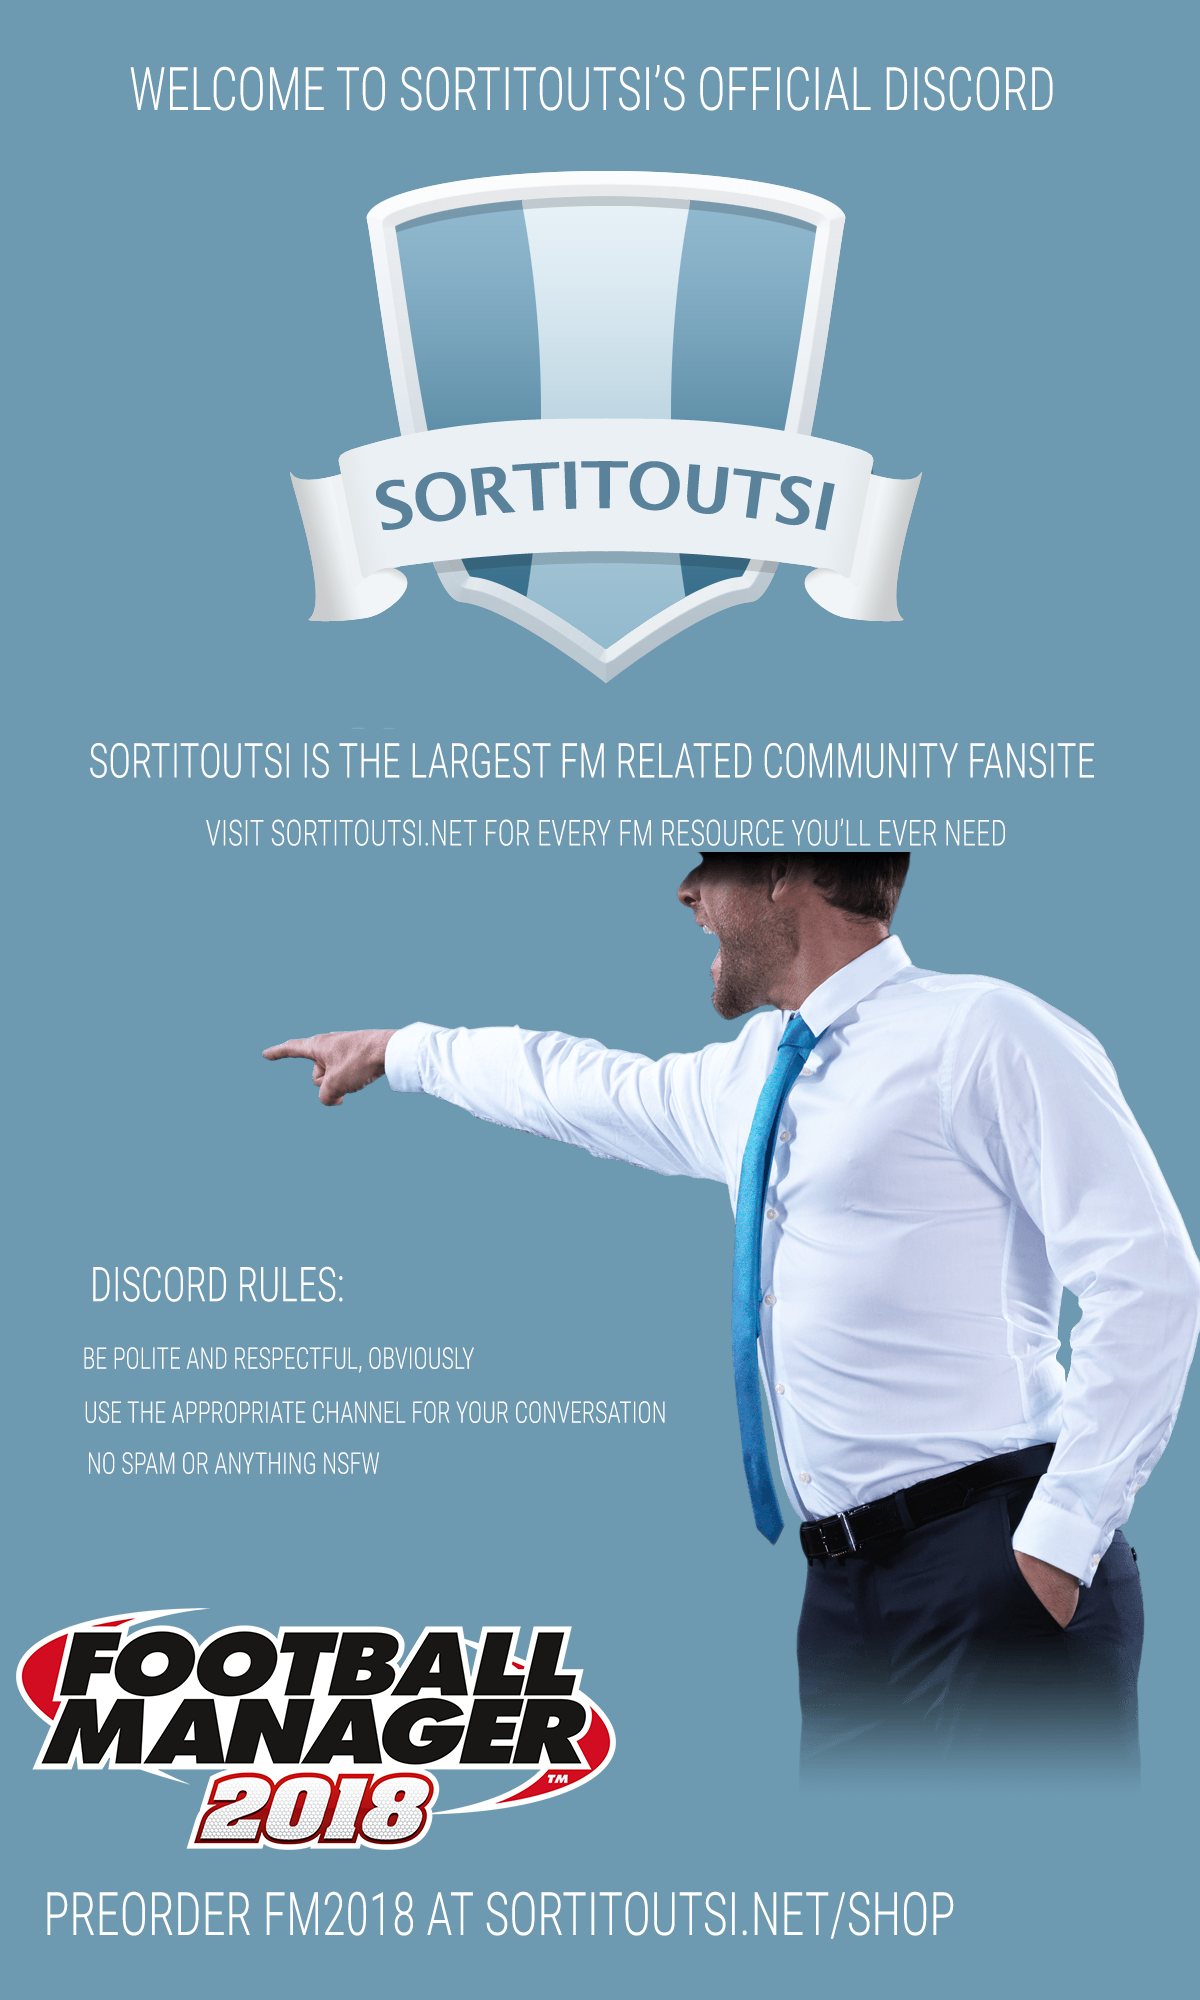 sortitoutsi has launched their own Discord server, worth a look